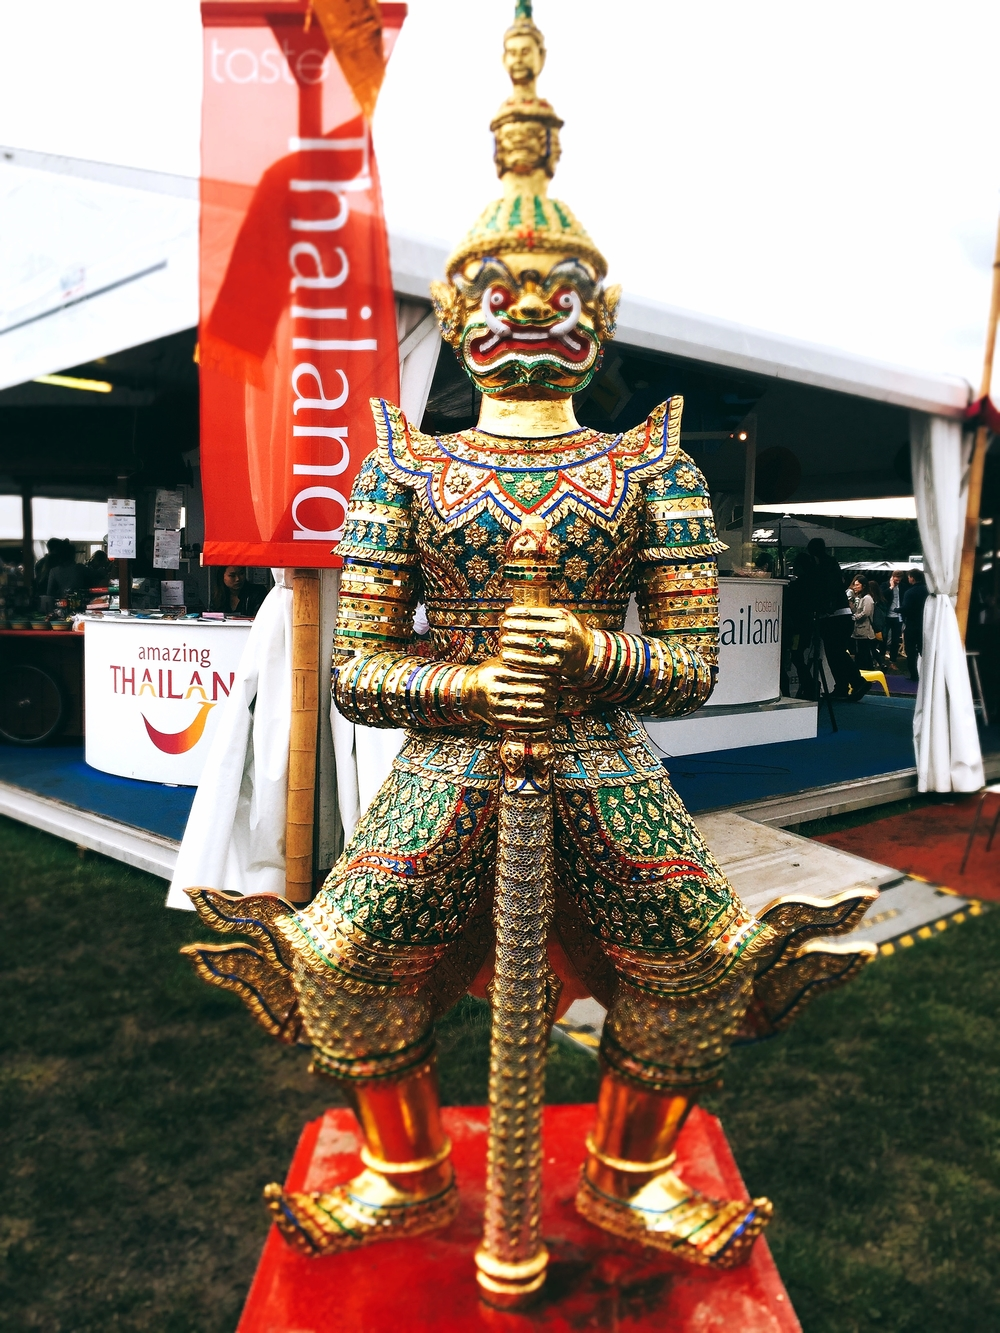 Taste of Thailand at Taste of London 2016